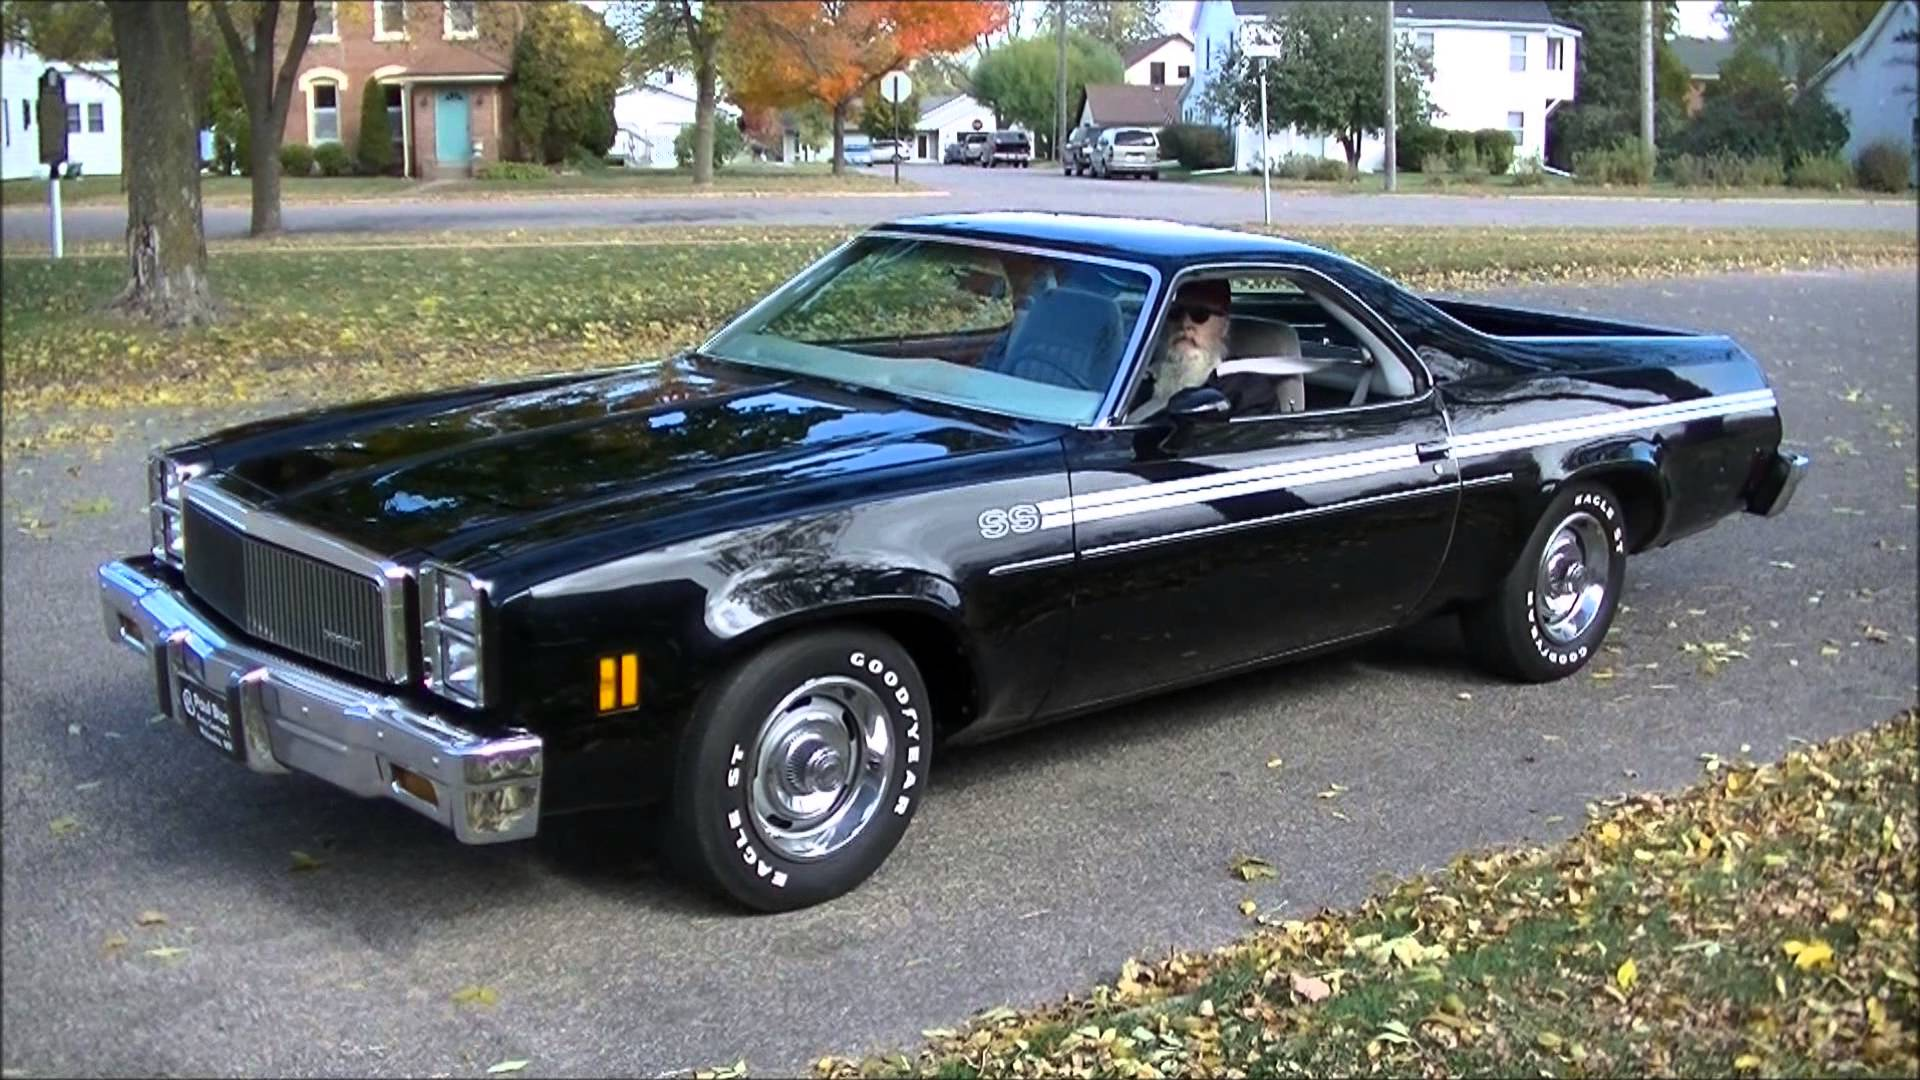 hight resolution of prev download chevrolet chevy el camino ss car jpeg next